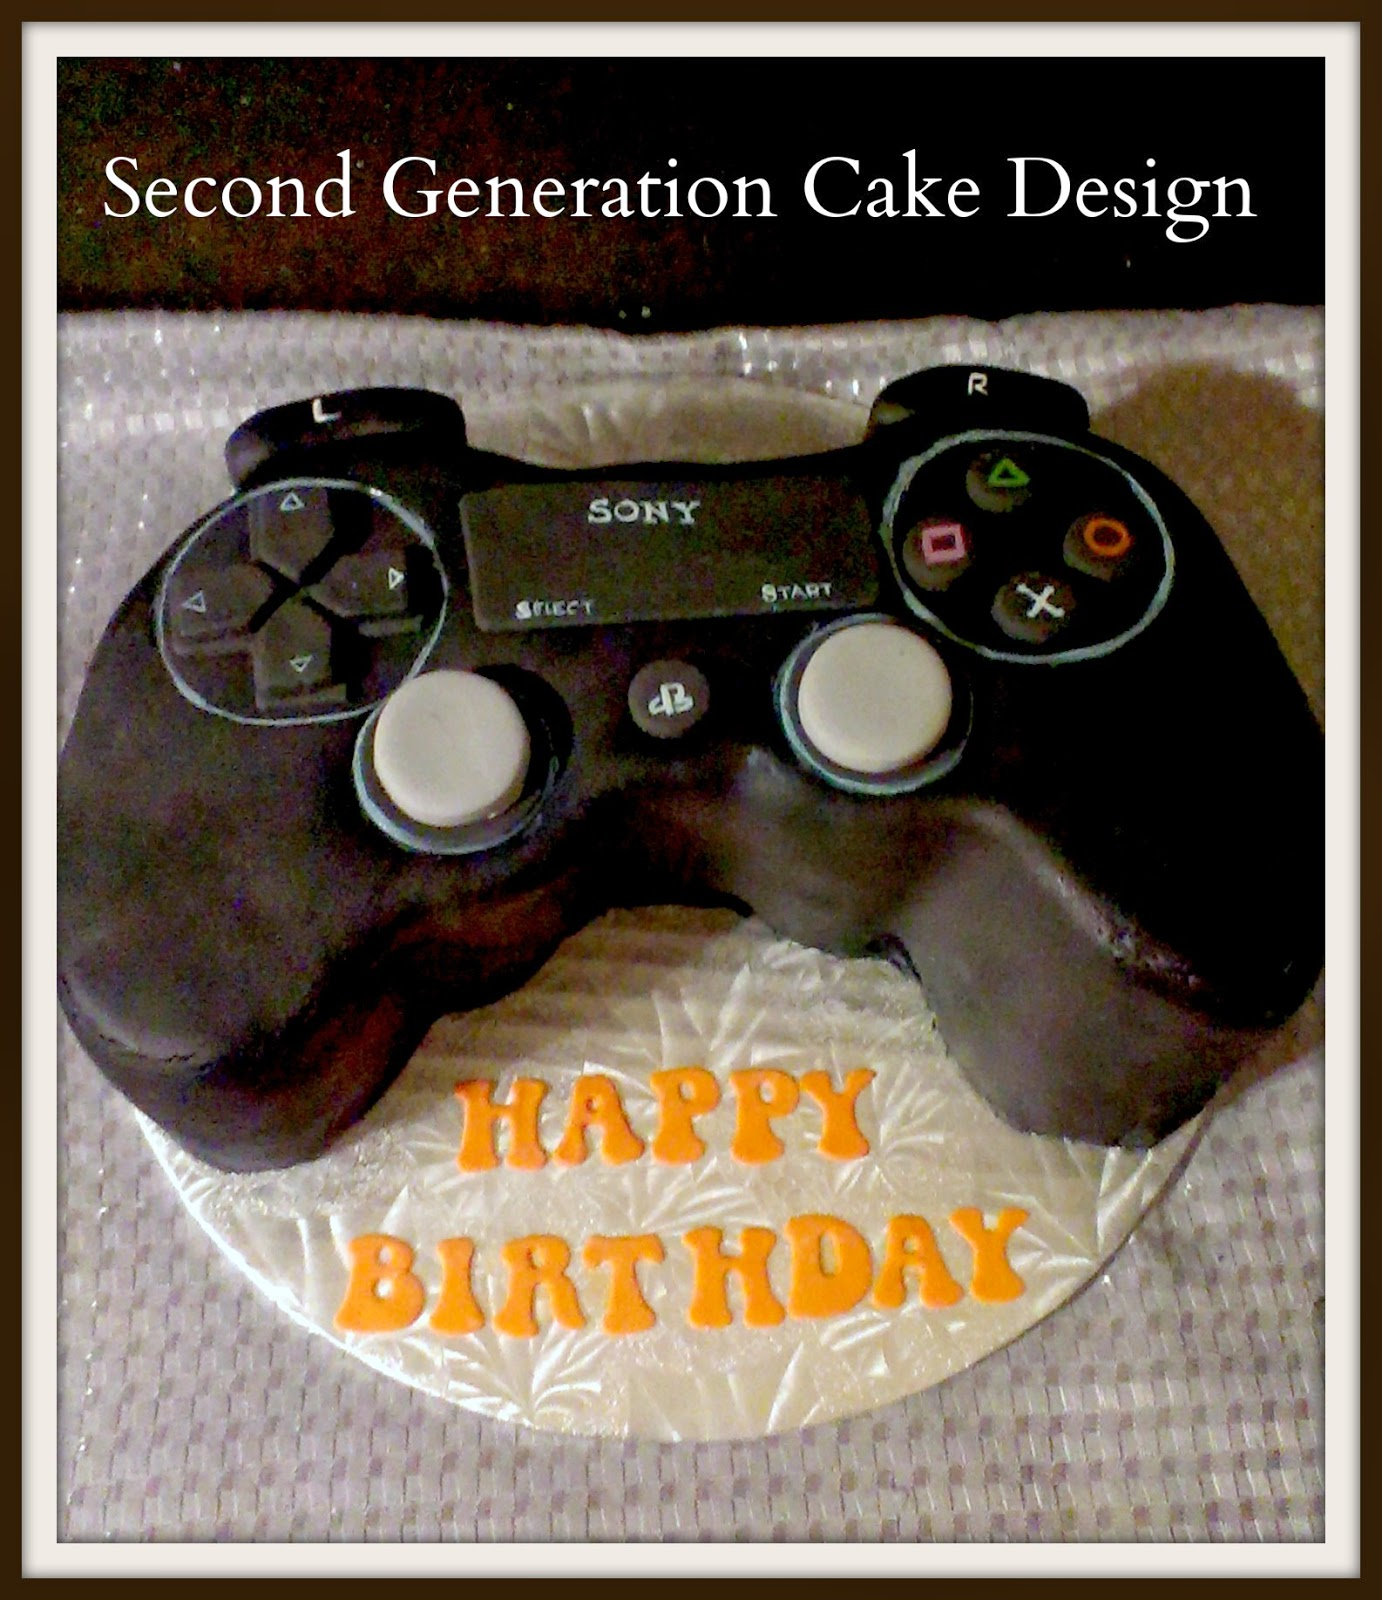 The Perfect Cake For A Gamers Birthday This Time Preferred Gaming System Was PS4 So I Created Controller In